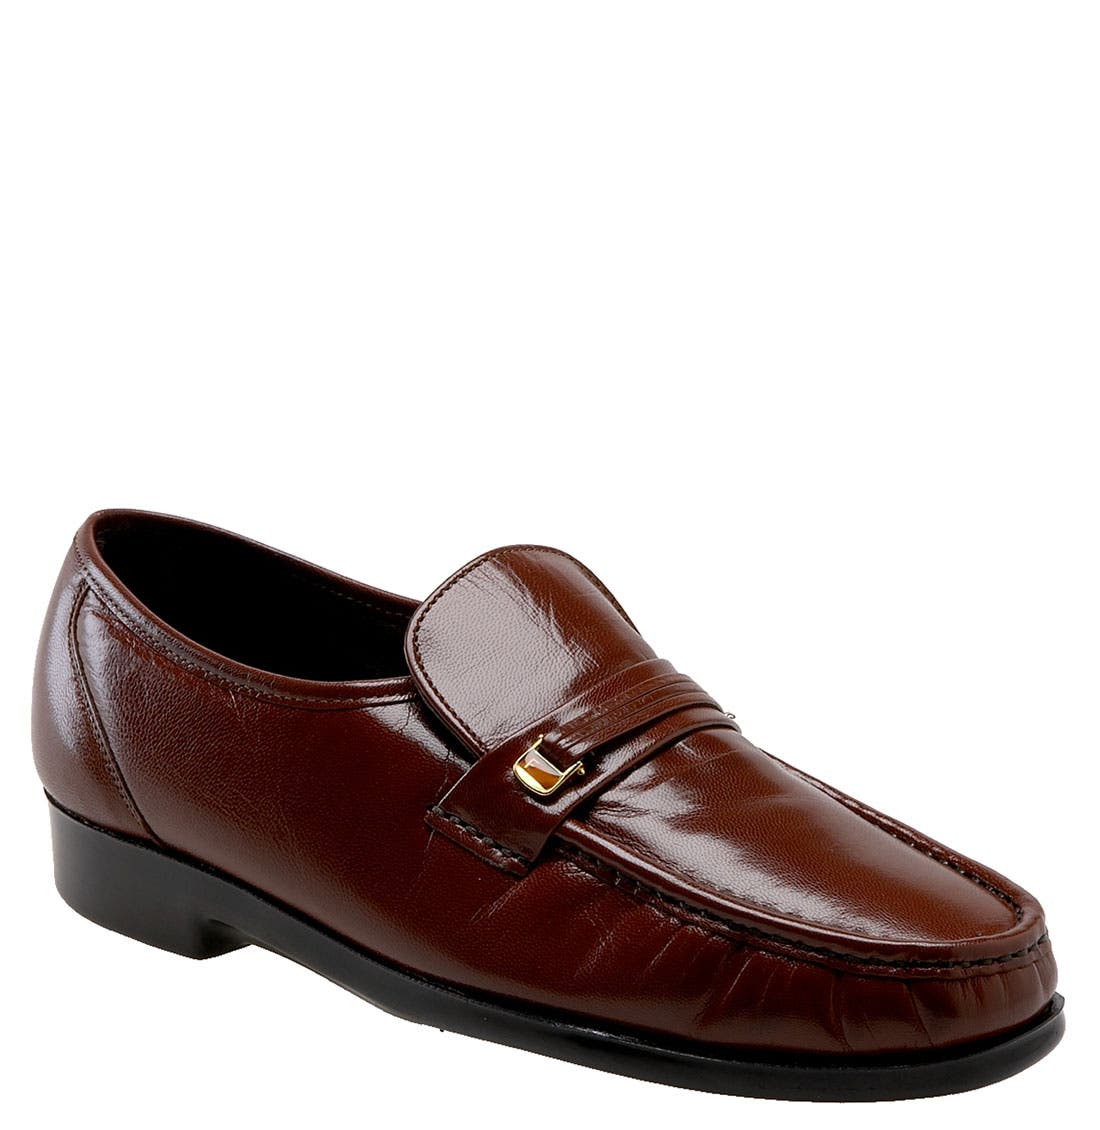 Main Image - Florsheim 'Riva' Moccasin Slip-On